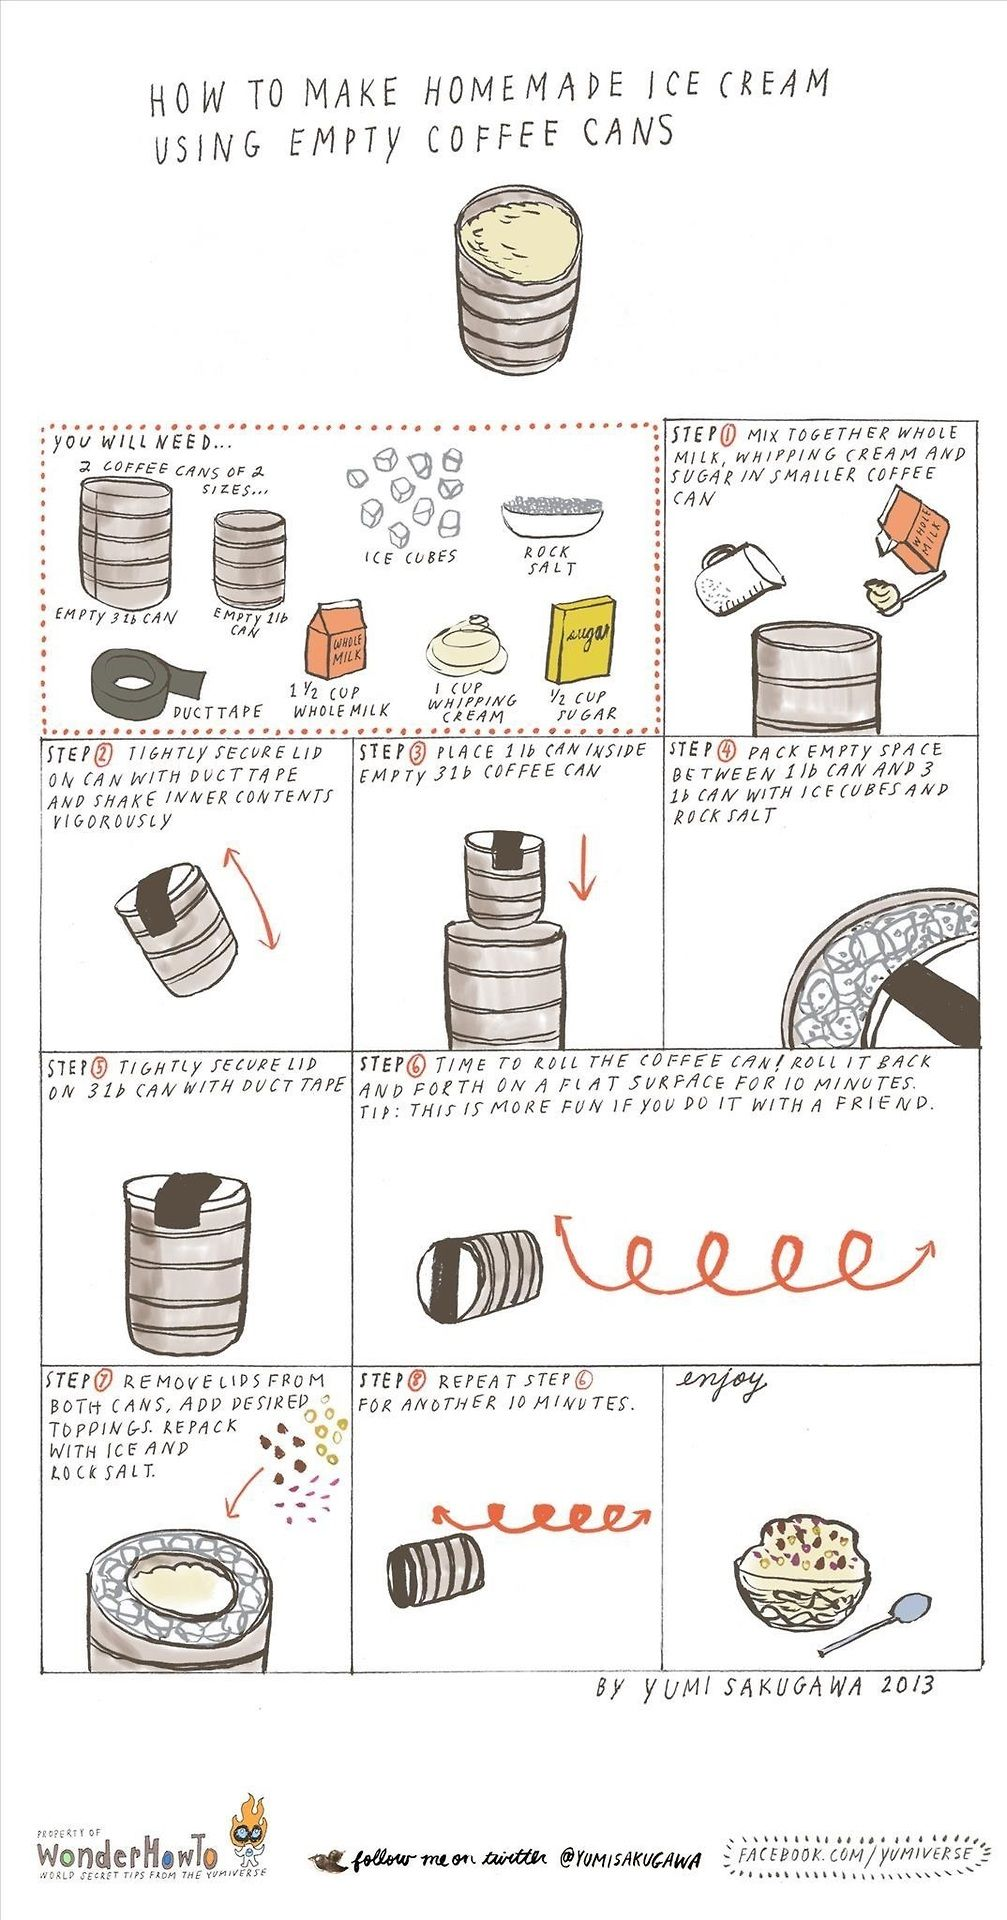 how to make homemade ice cream using empty coffee cans